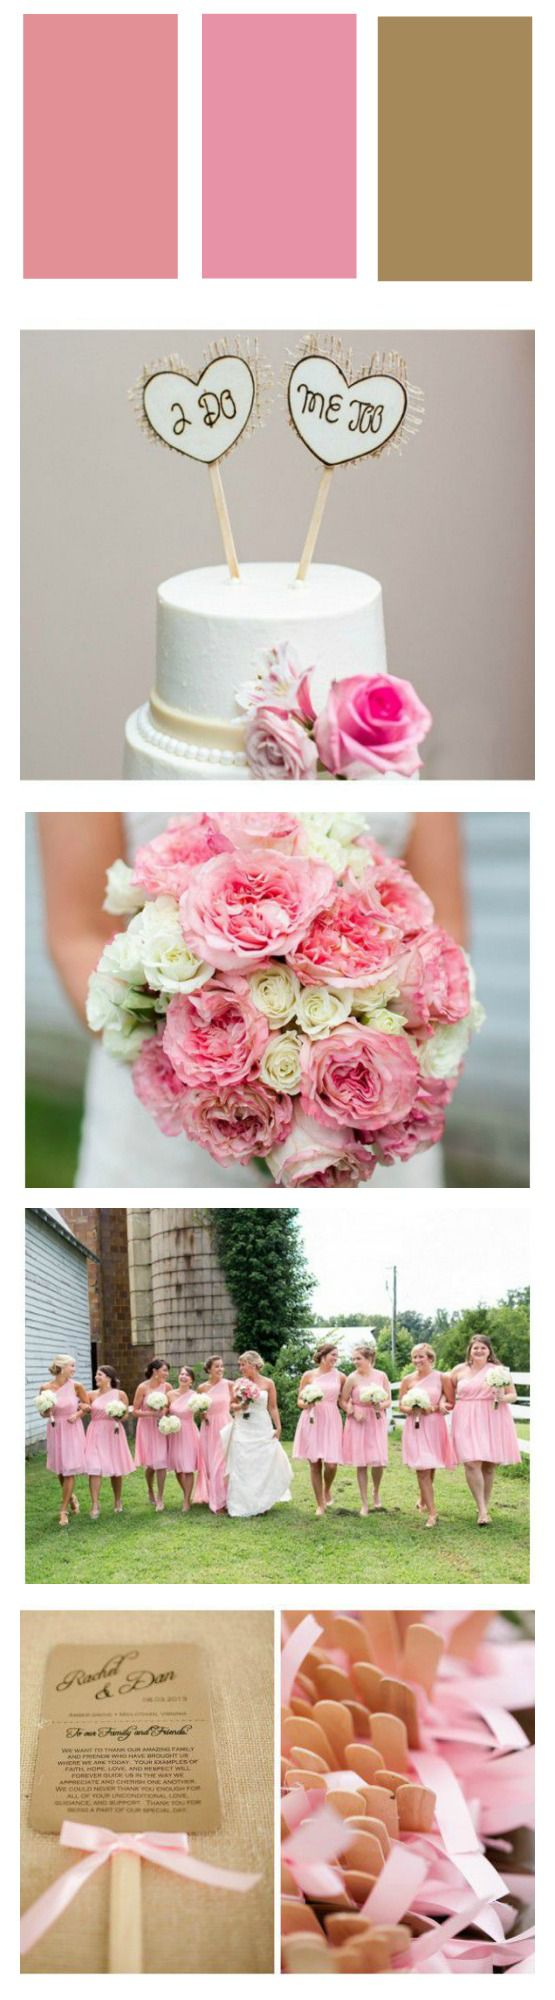 Pink And White Wedding - Rustic Wedding Chic